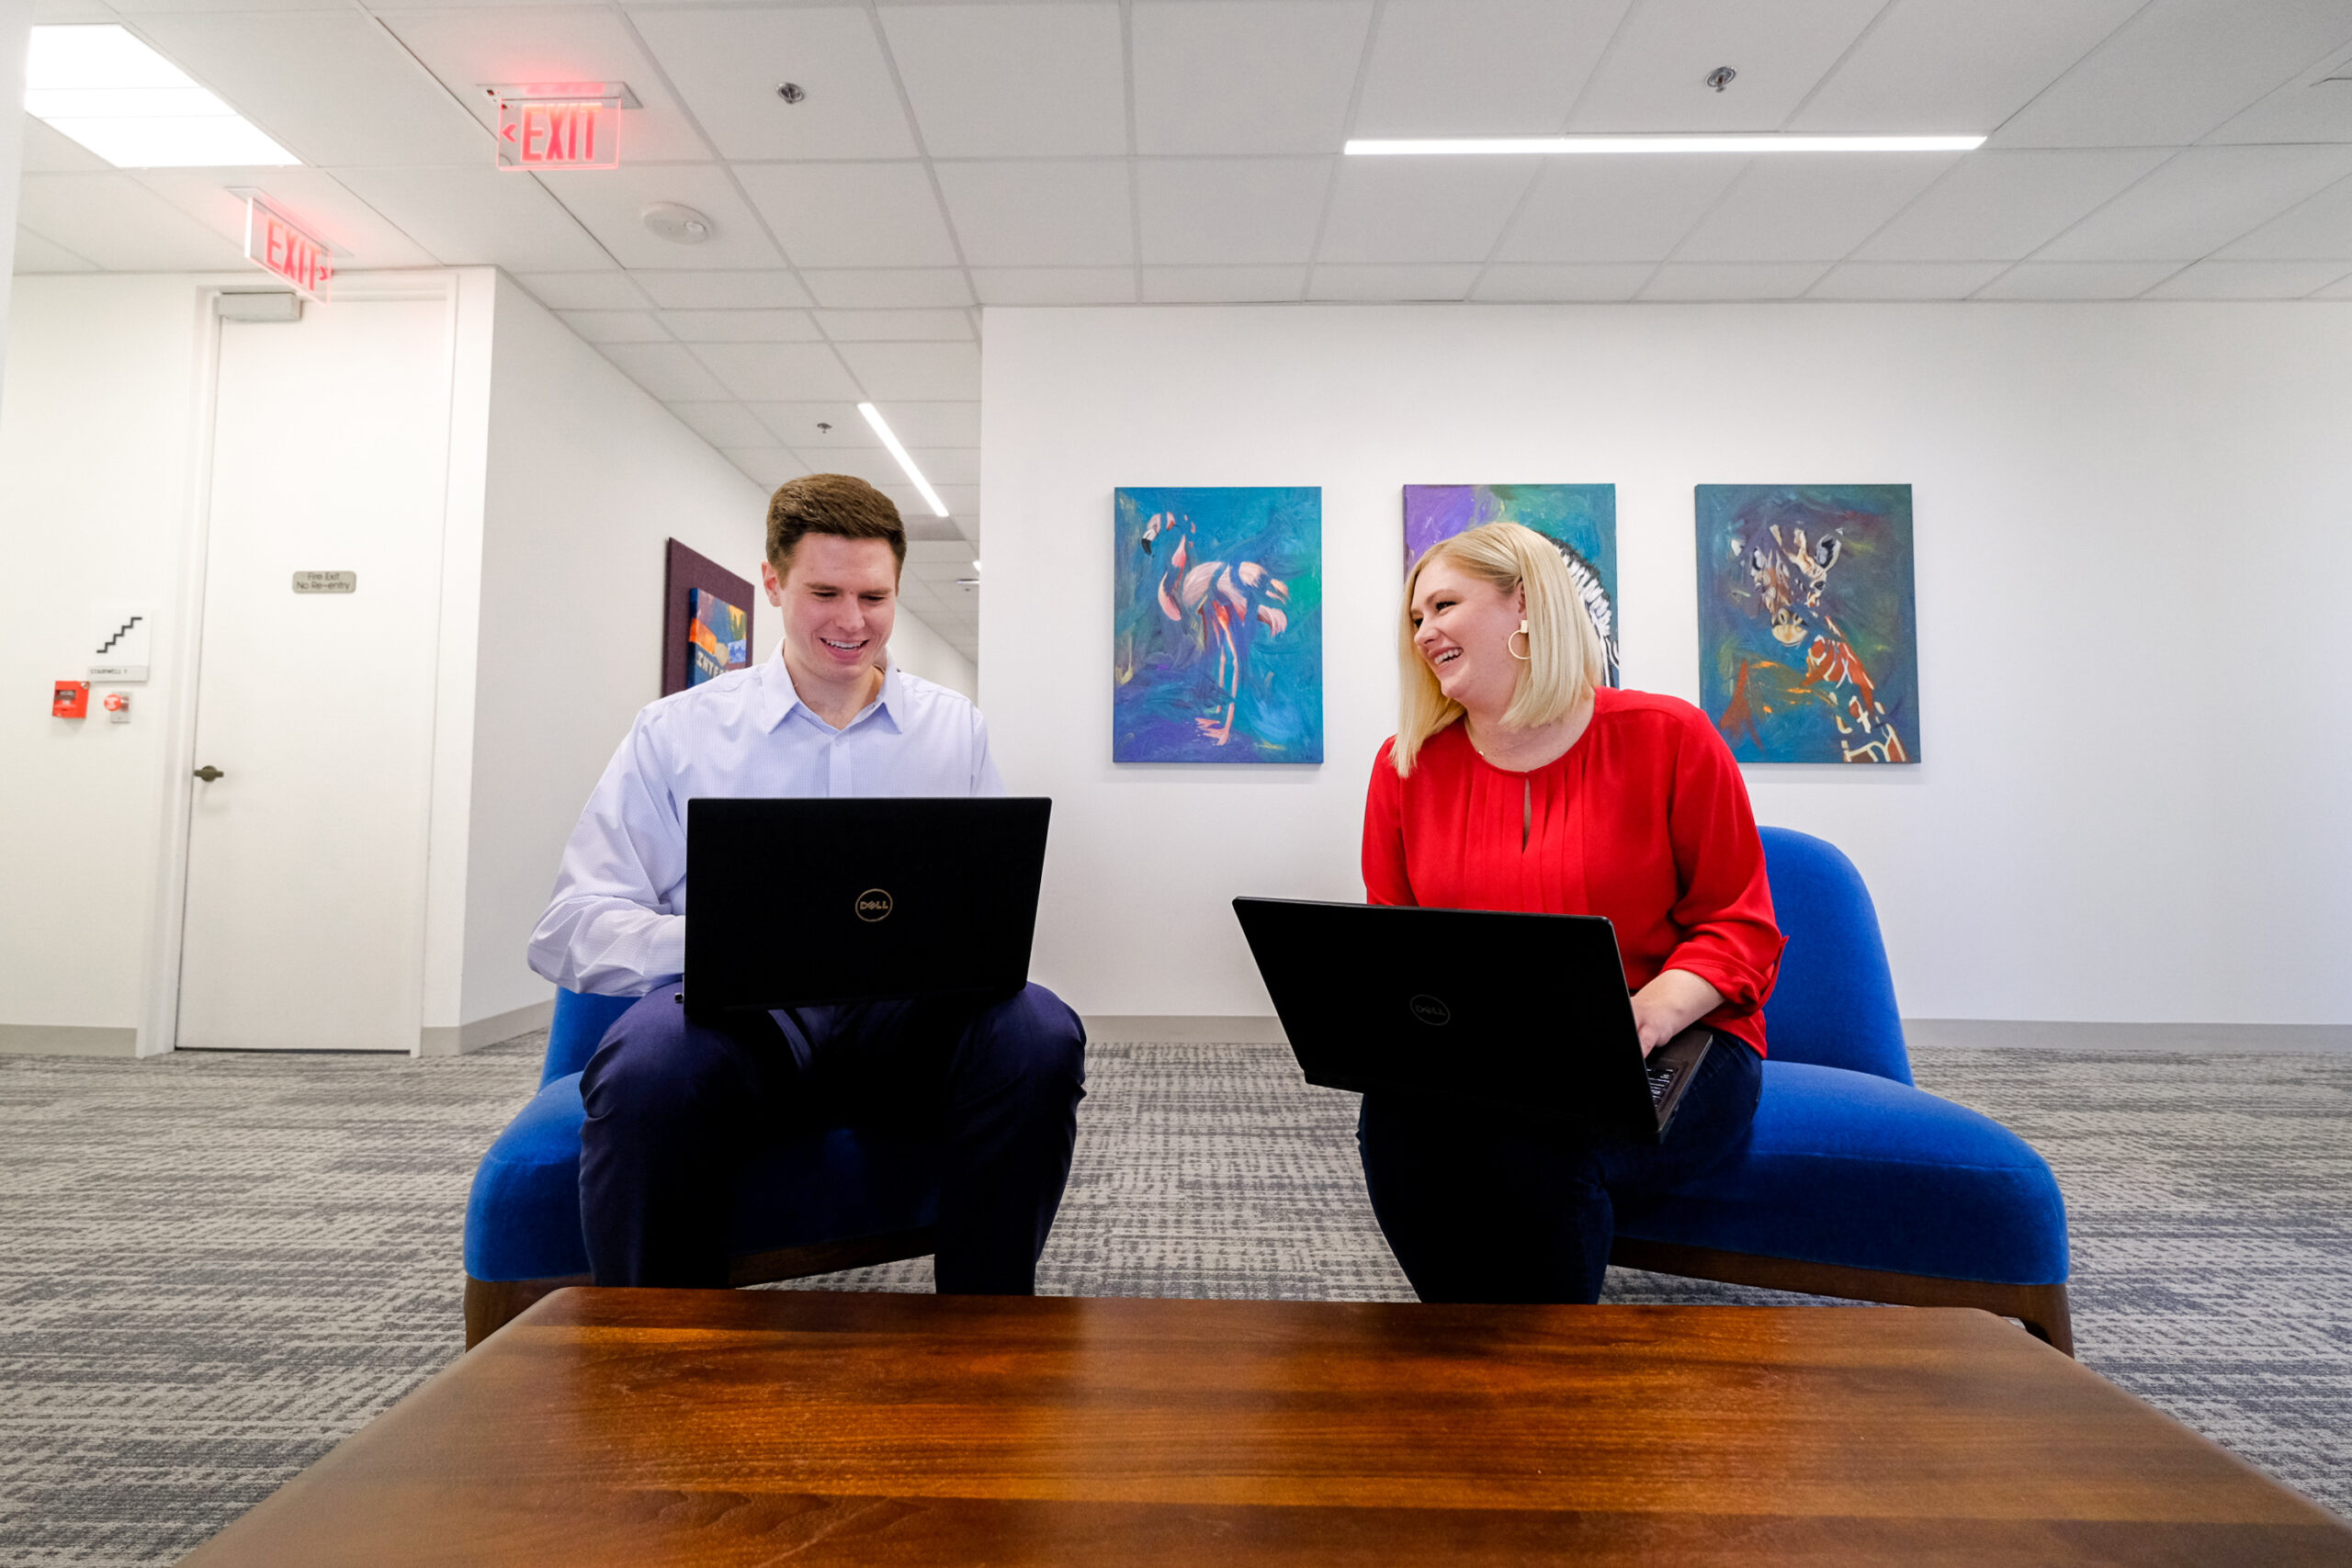 A Caucasian male and Caucasian female sitting in office chairs on laptops